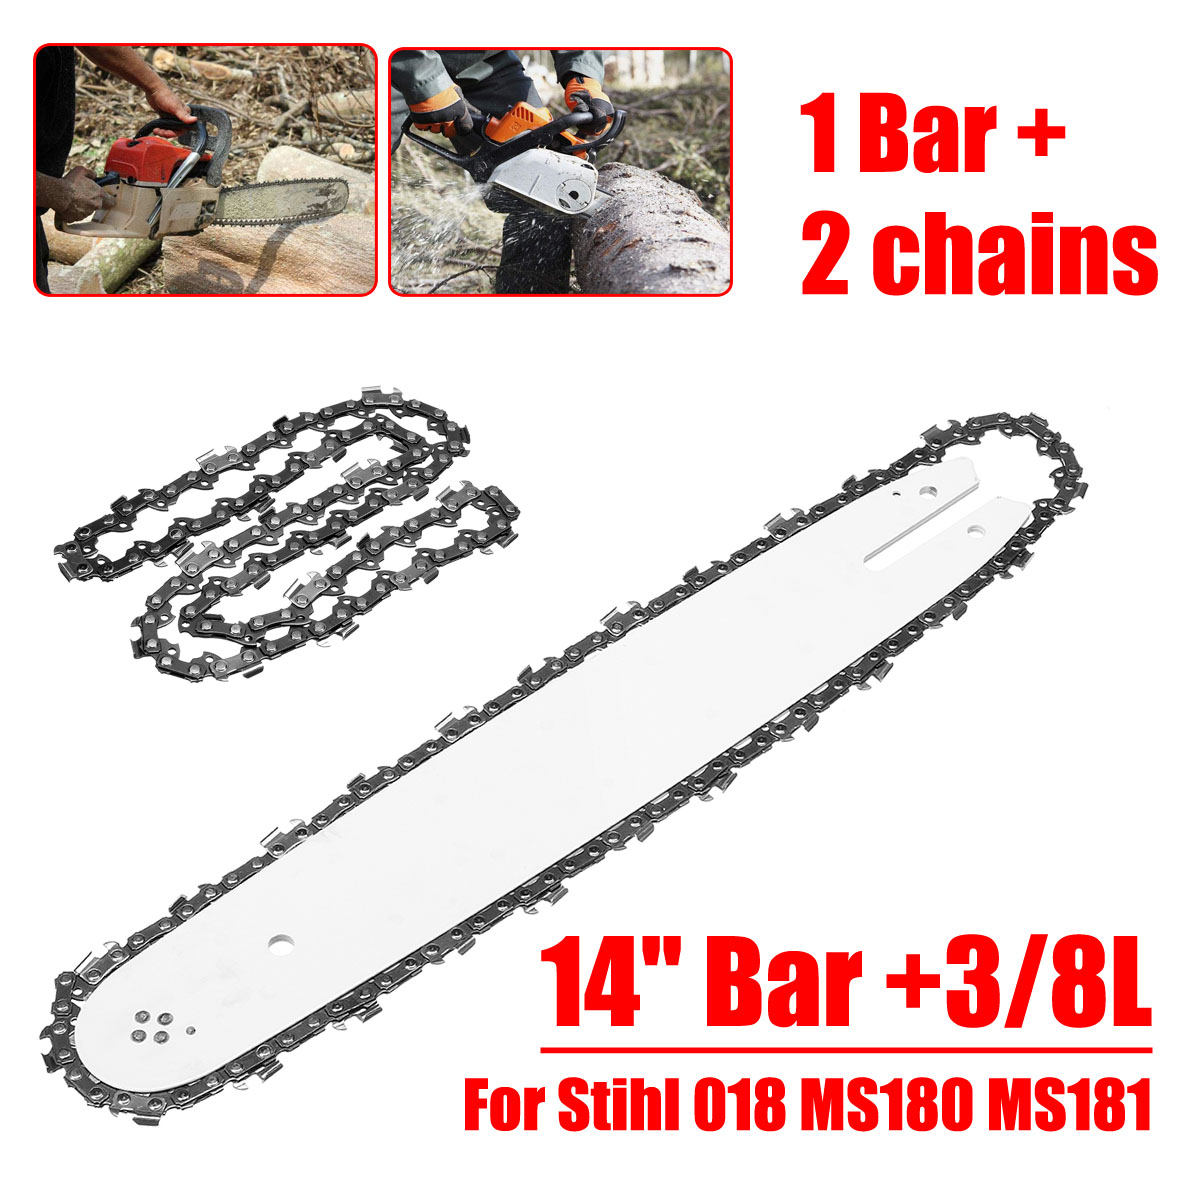 Doersupp 14 Bar +3/8L 2pcs Chains Fit For Stihl 018 MS180 MS181 Chainsaws Chain SawDoersupp 14 Bar +3/8L 2pcs Chains Fit For Stihl 018 MS180 MS181 Chainsaws Chain Saw